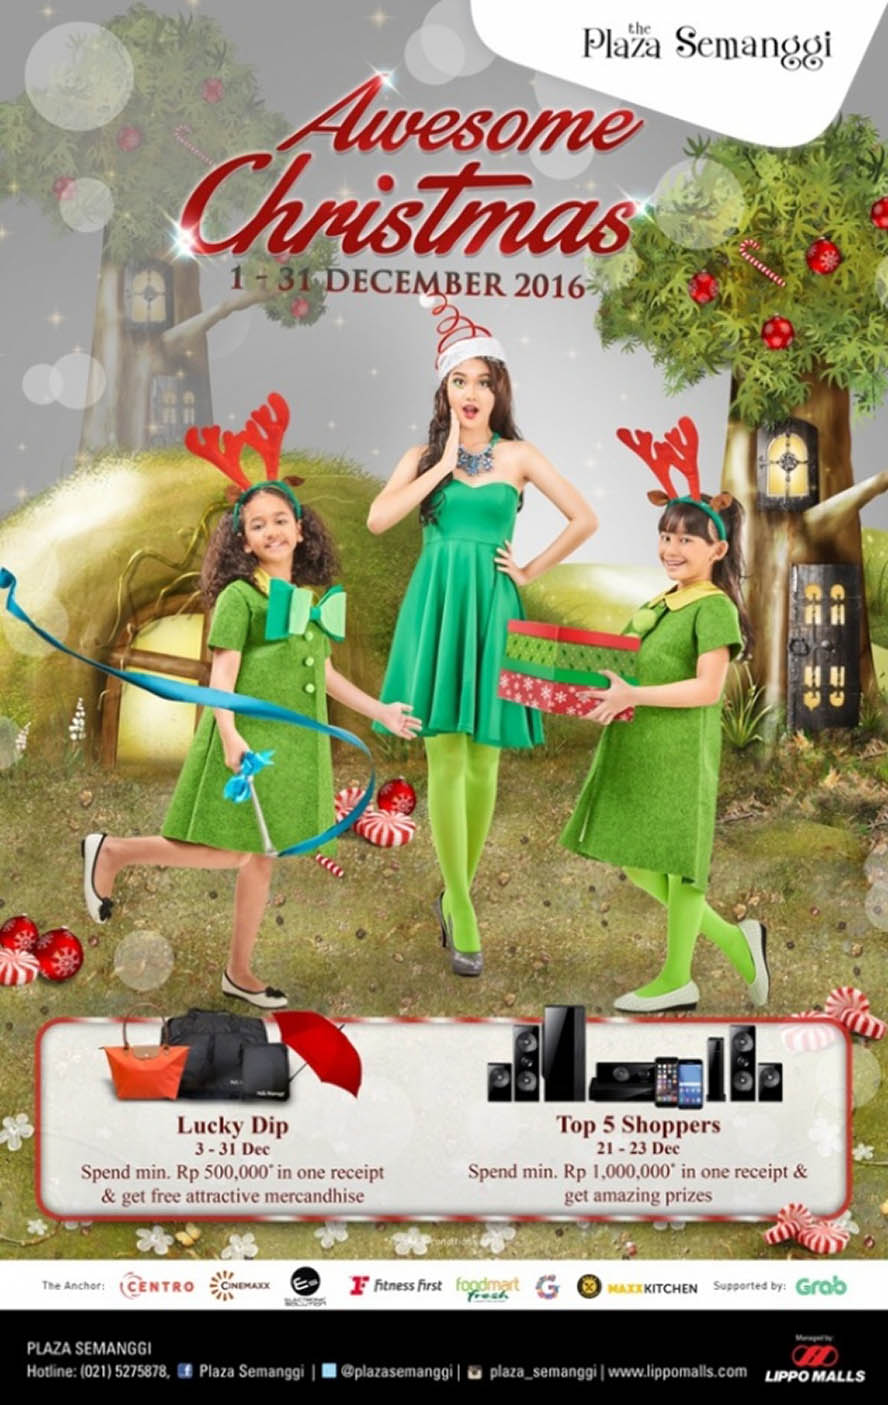 Awesome Christmas The Plaza Semanggi, Periode Desember 2016